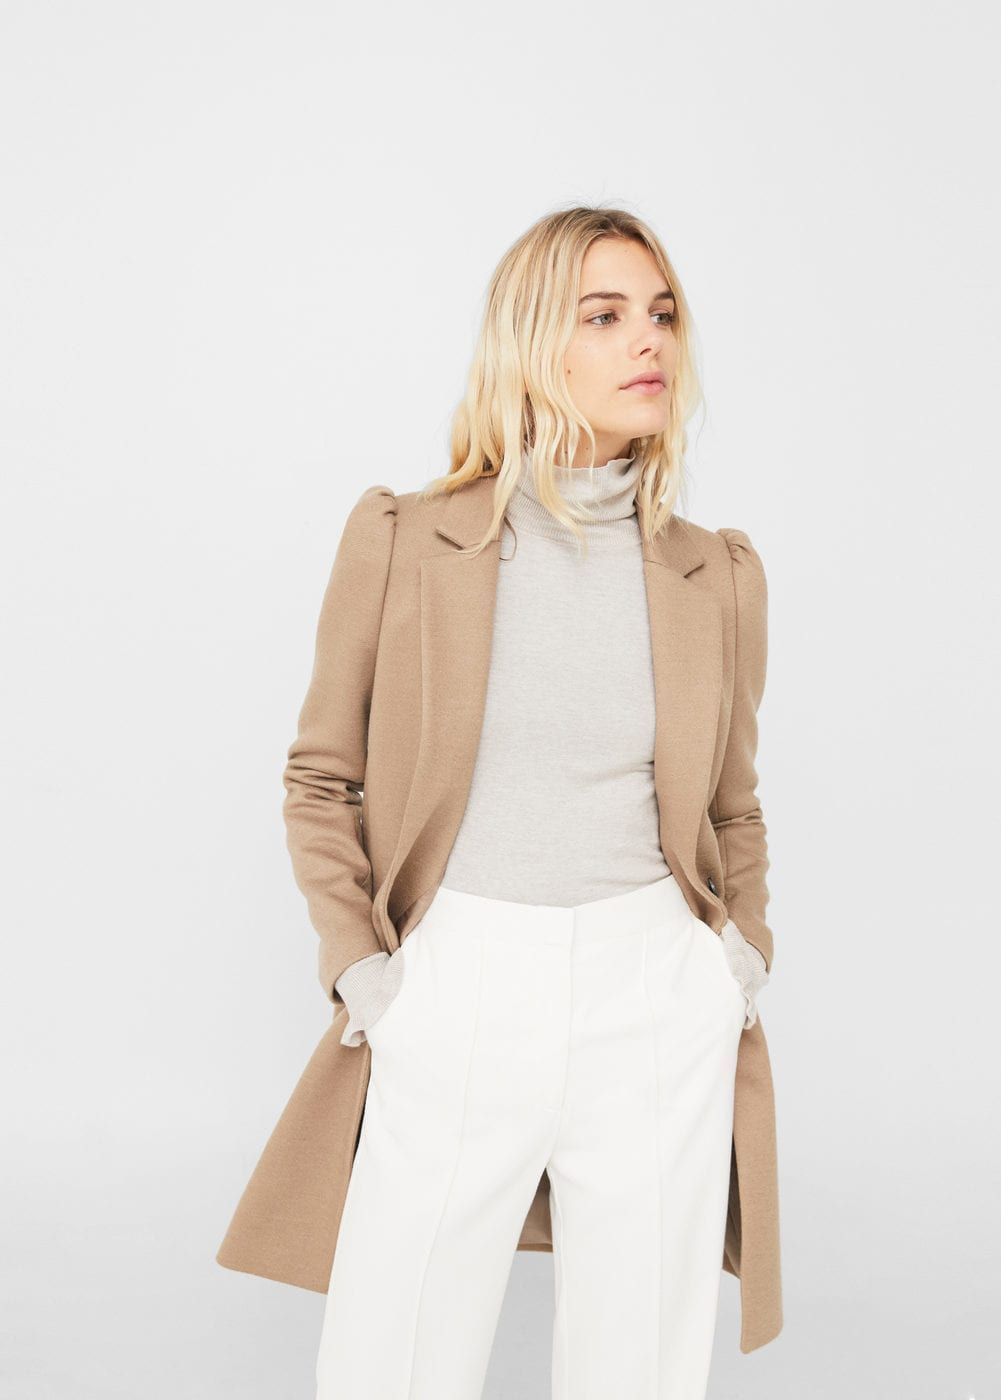 Puffed sleeves coat - Women   my STYLE .   Pinterest   Coats for ... bf2f4b34123b